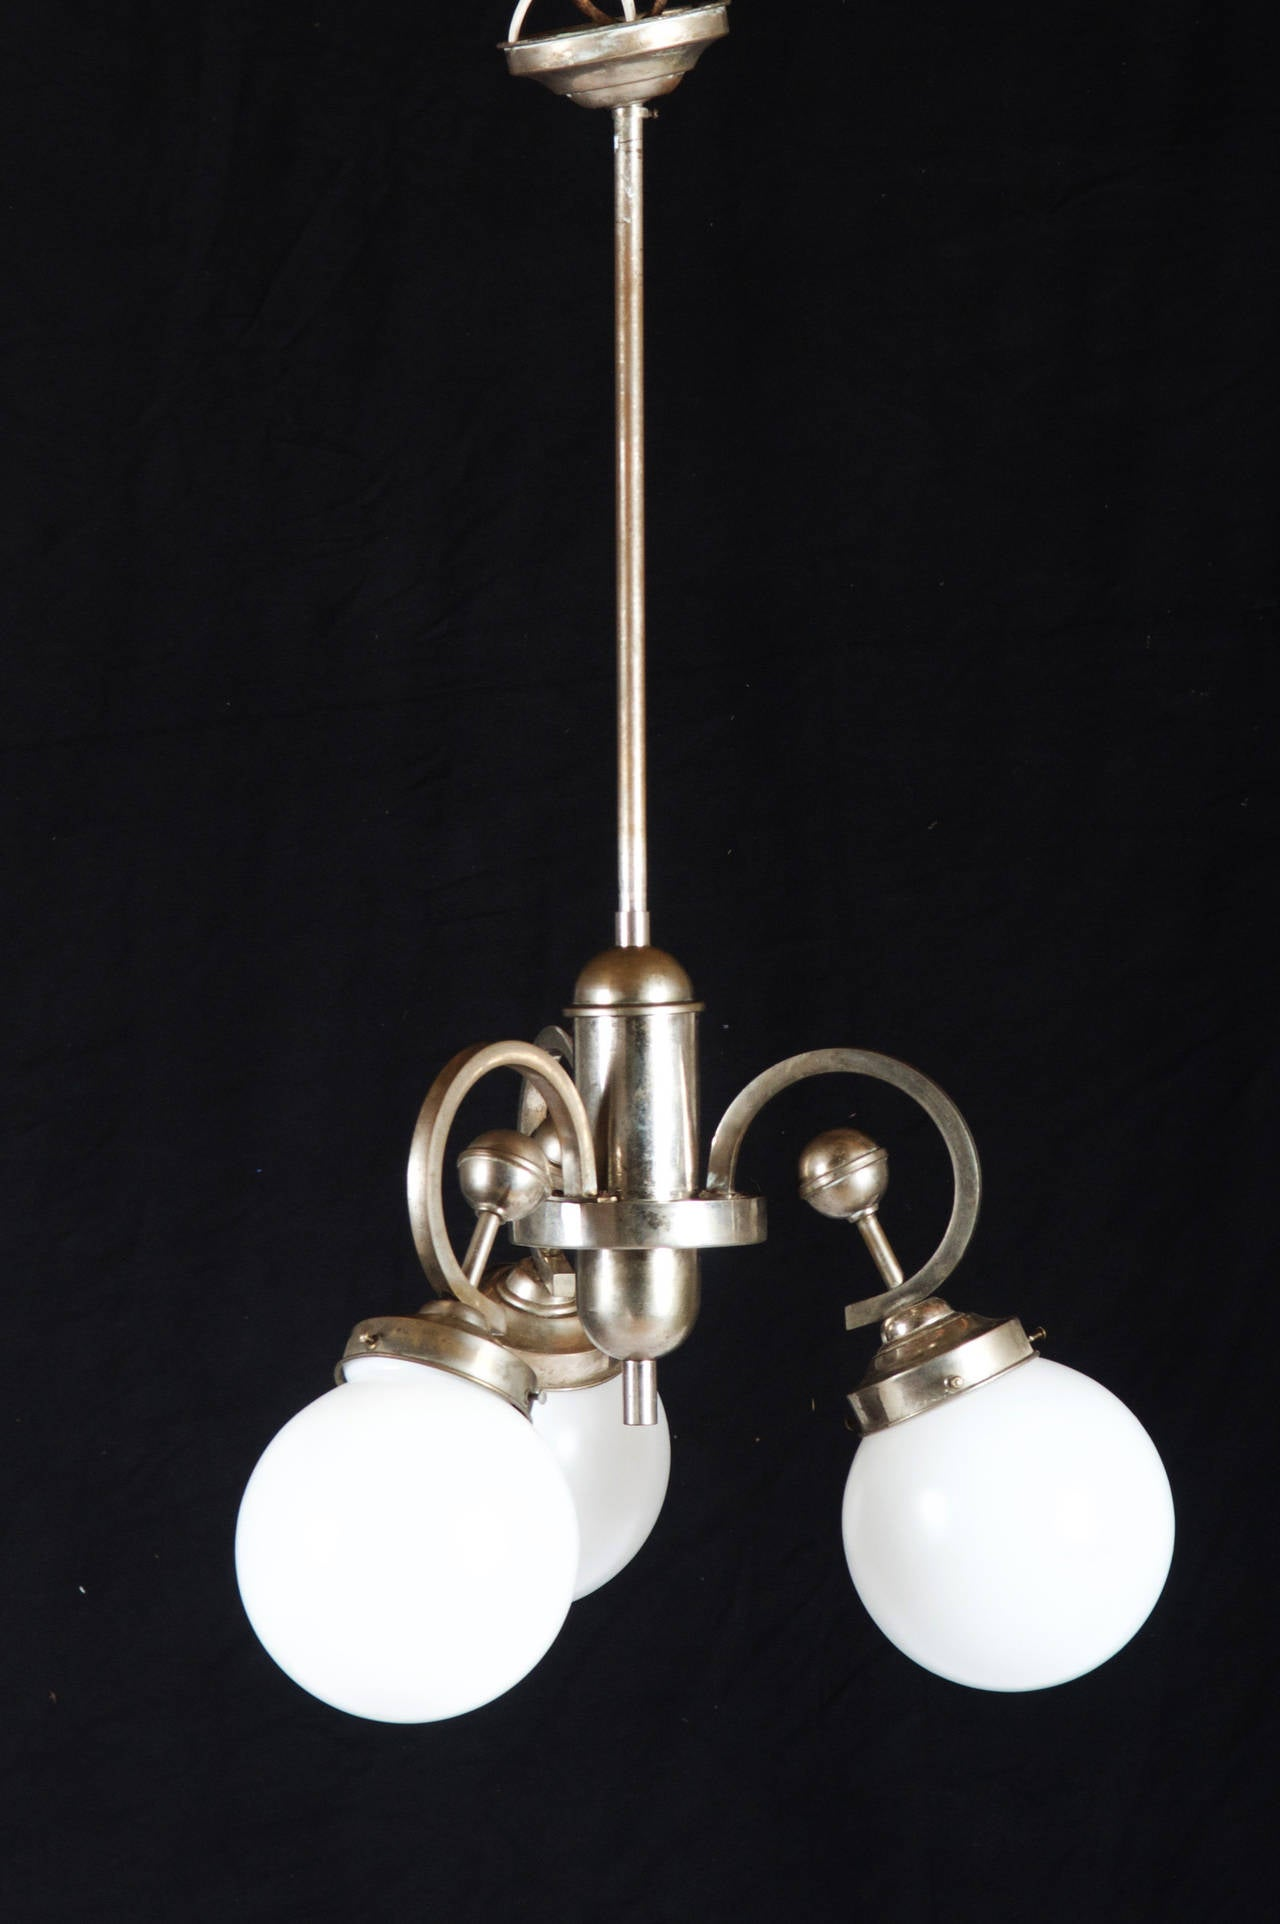 Art Deco chandelier from circa 1930s.